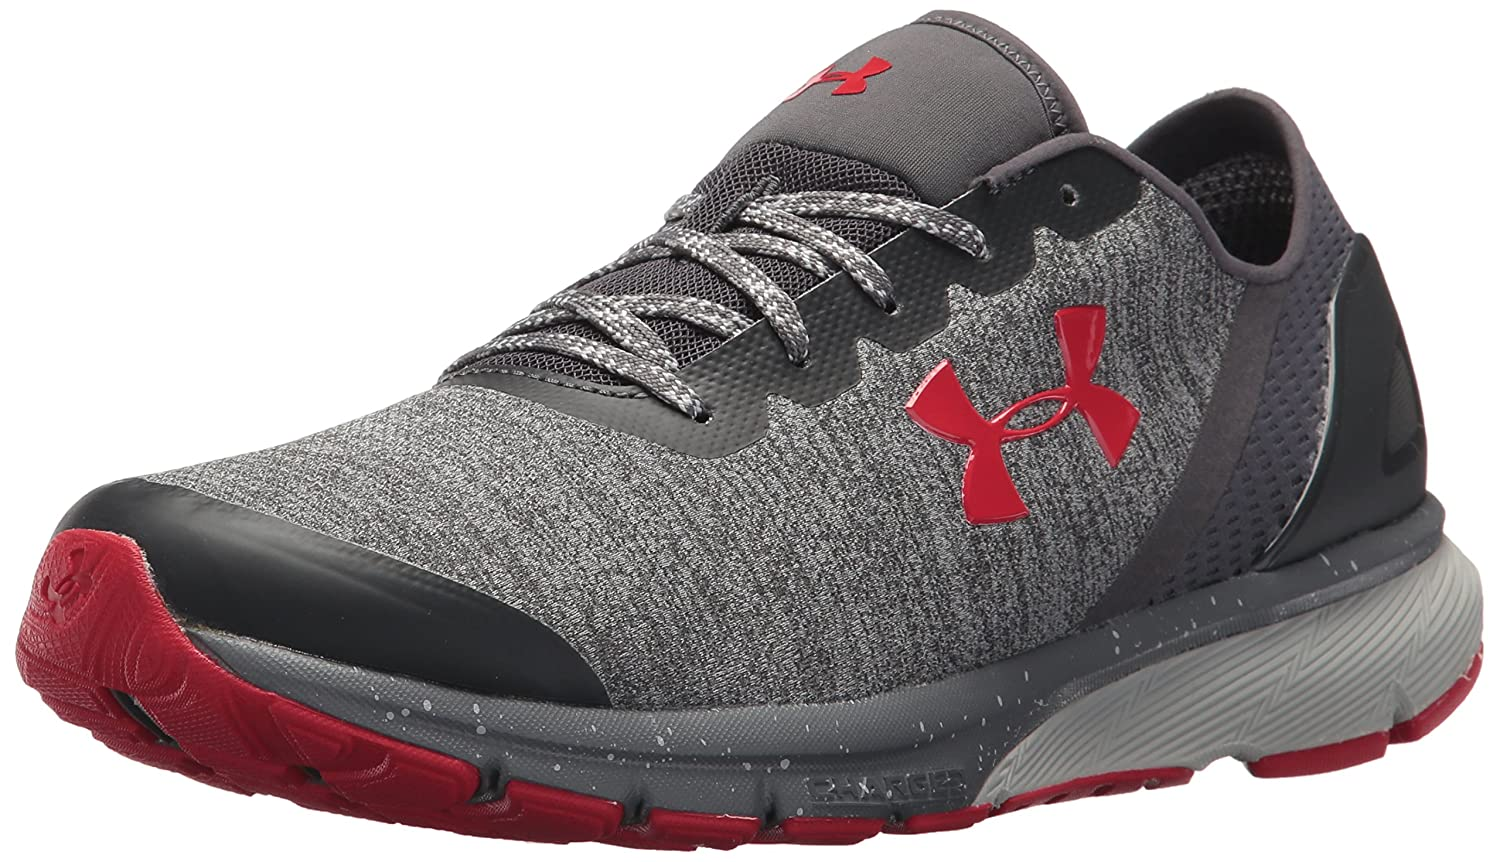 Under Armour Men's Charged Escape Running Shoe B0758HYJMY 8.5 M US|Glacier Gray (102)/Rhino Gray